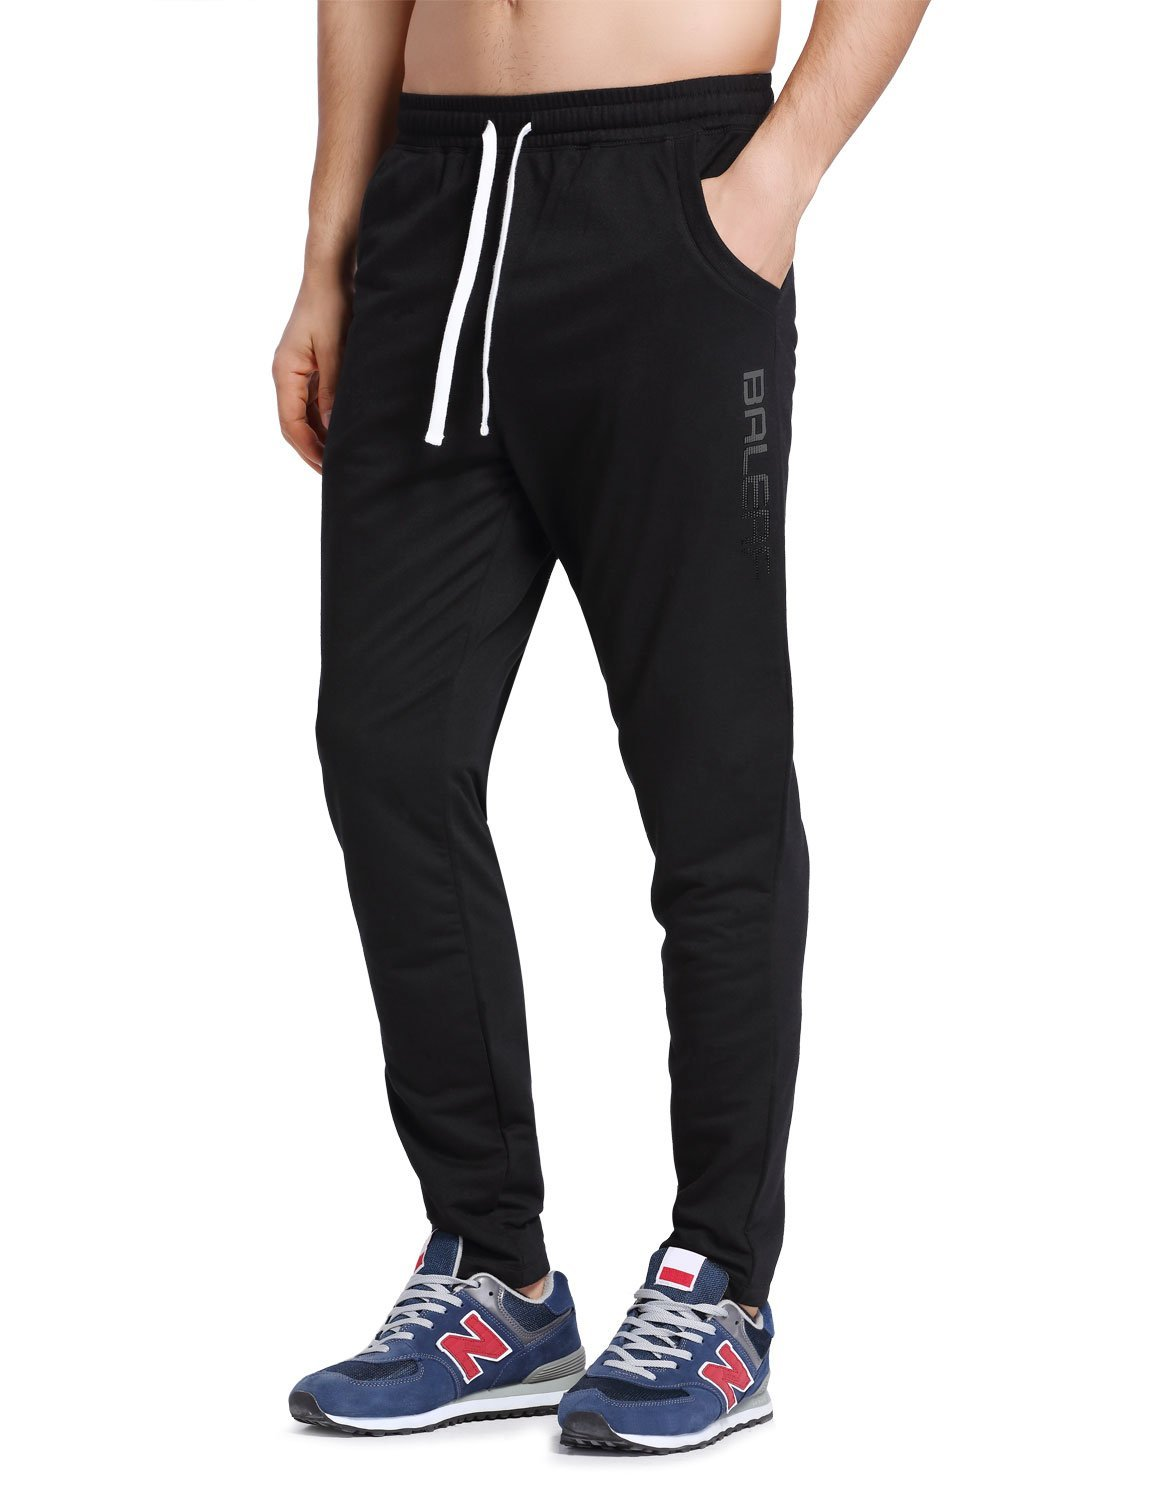 Baleaf Men's Tapered Athletic Running Track Pants Black Size XL by Baleaf (Image #1)